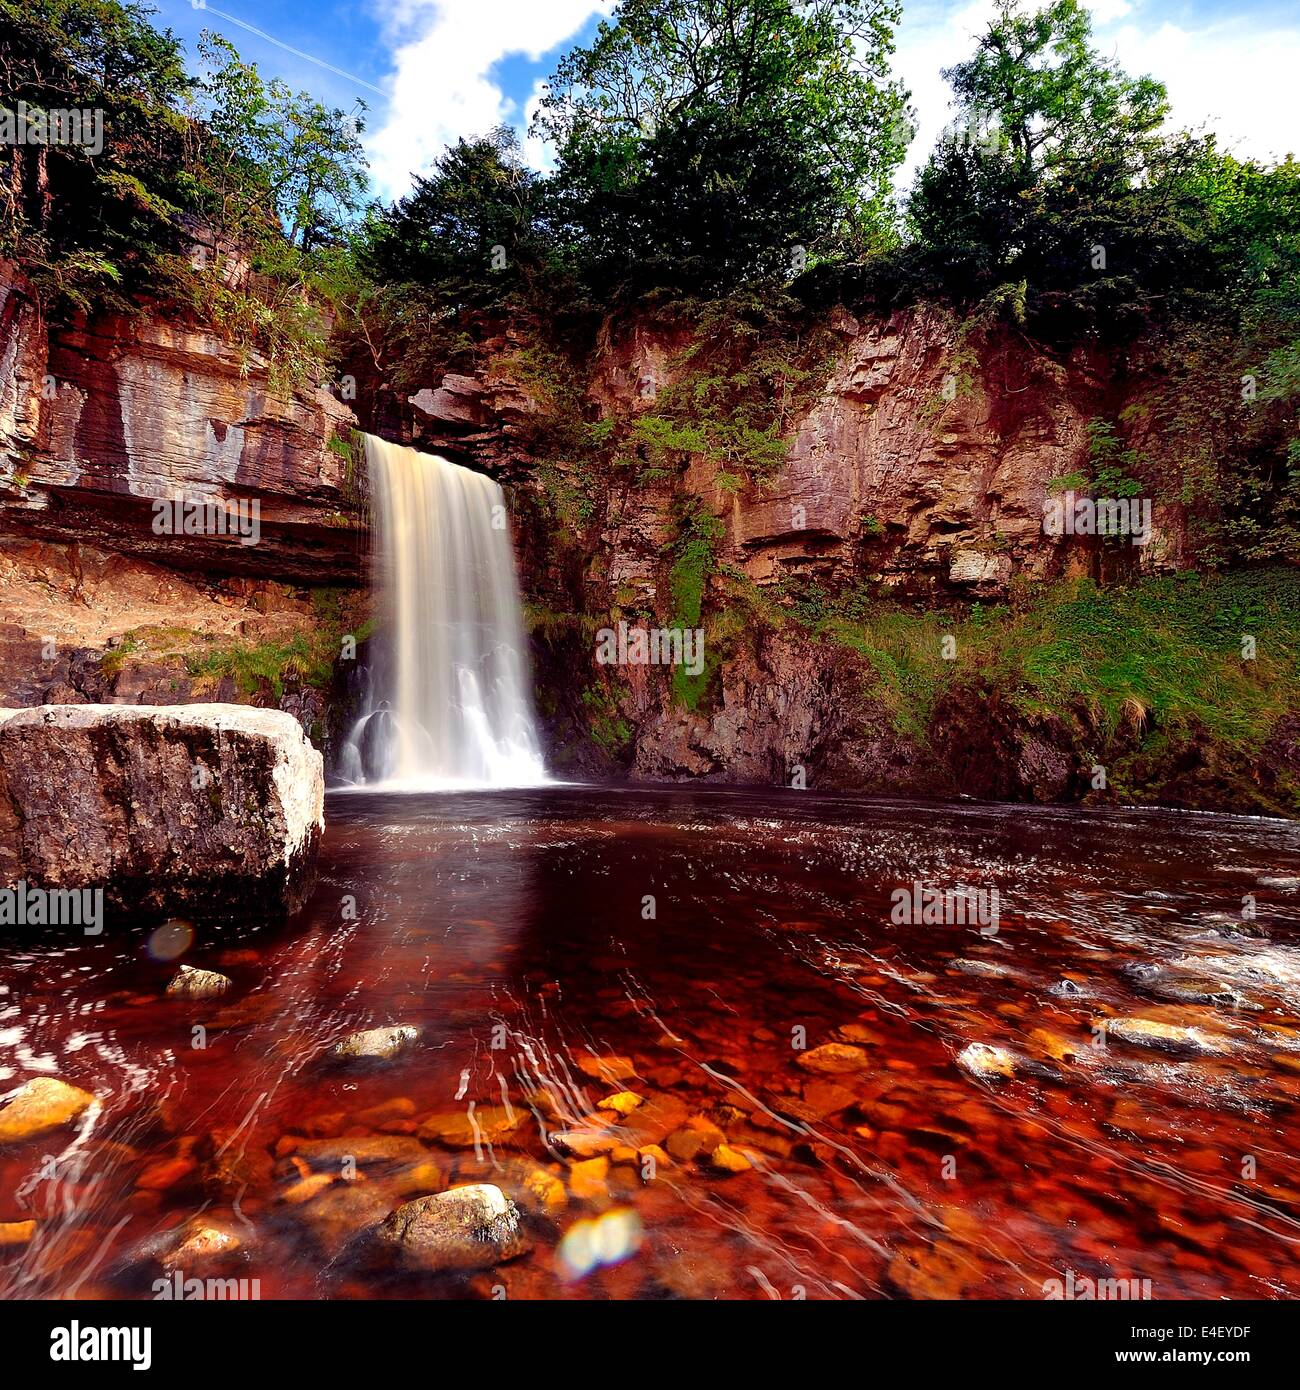 Thronton Force falls, Ingleton - Stock Image